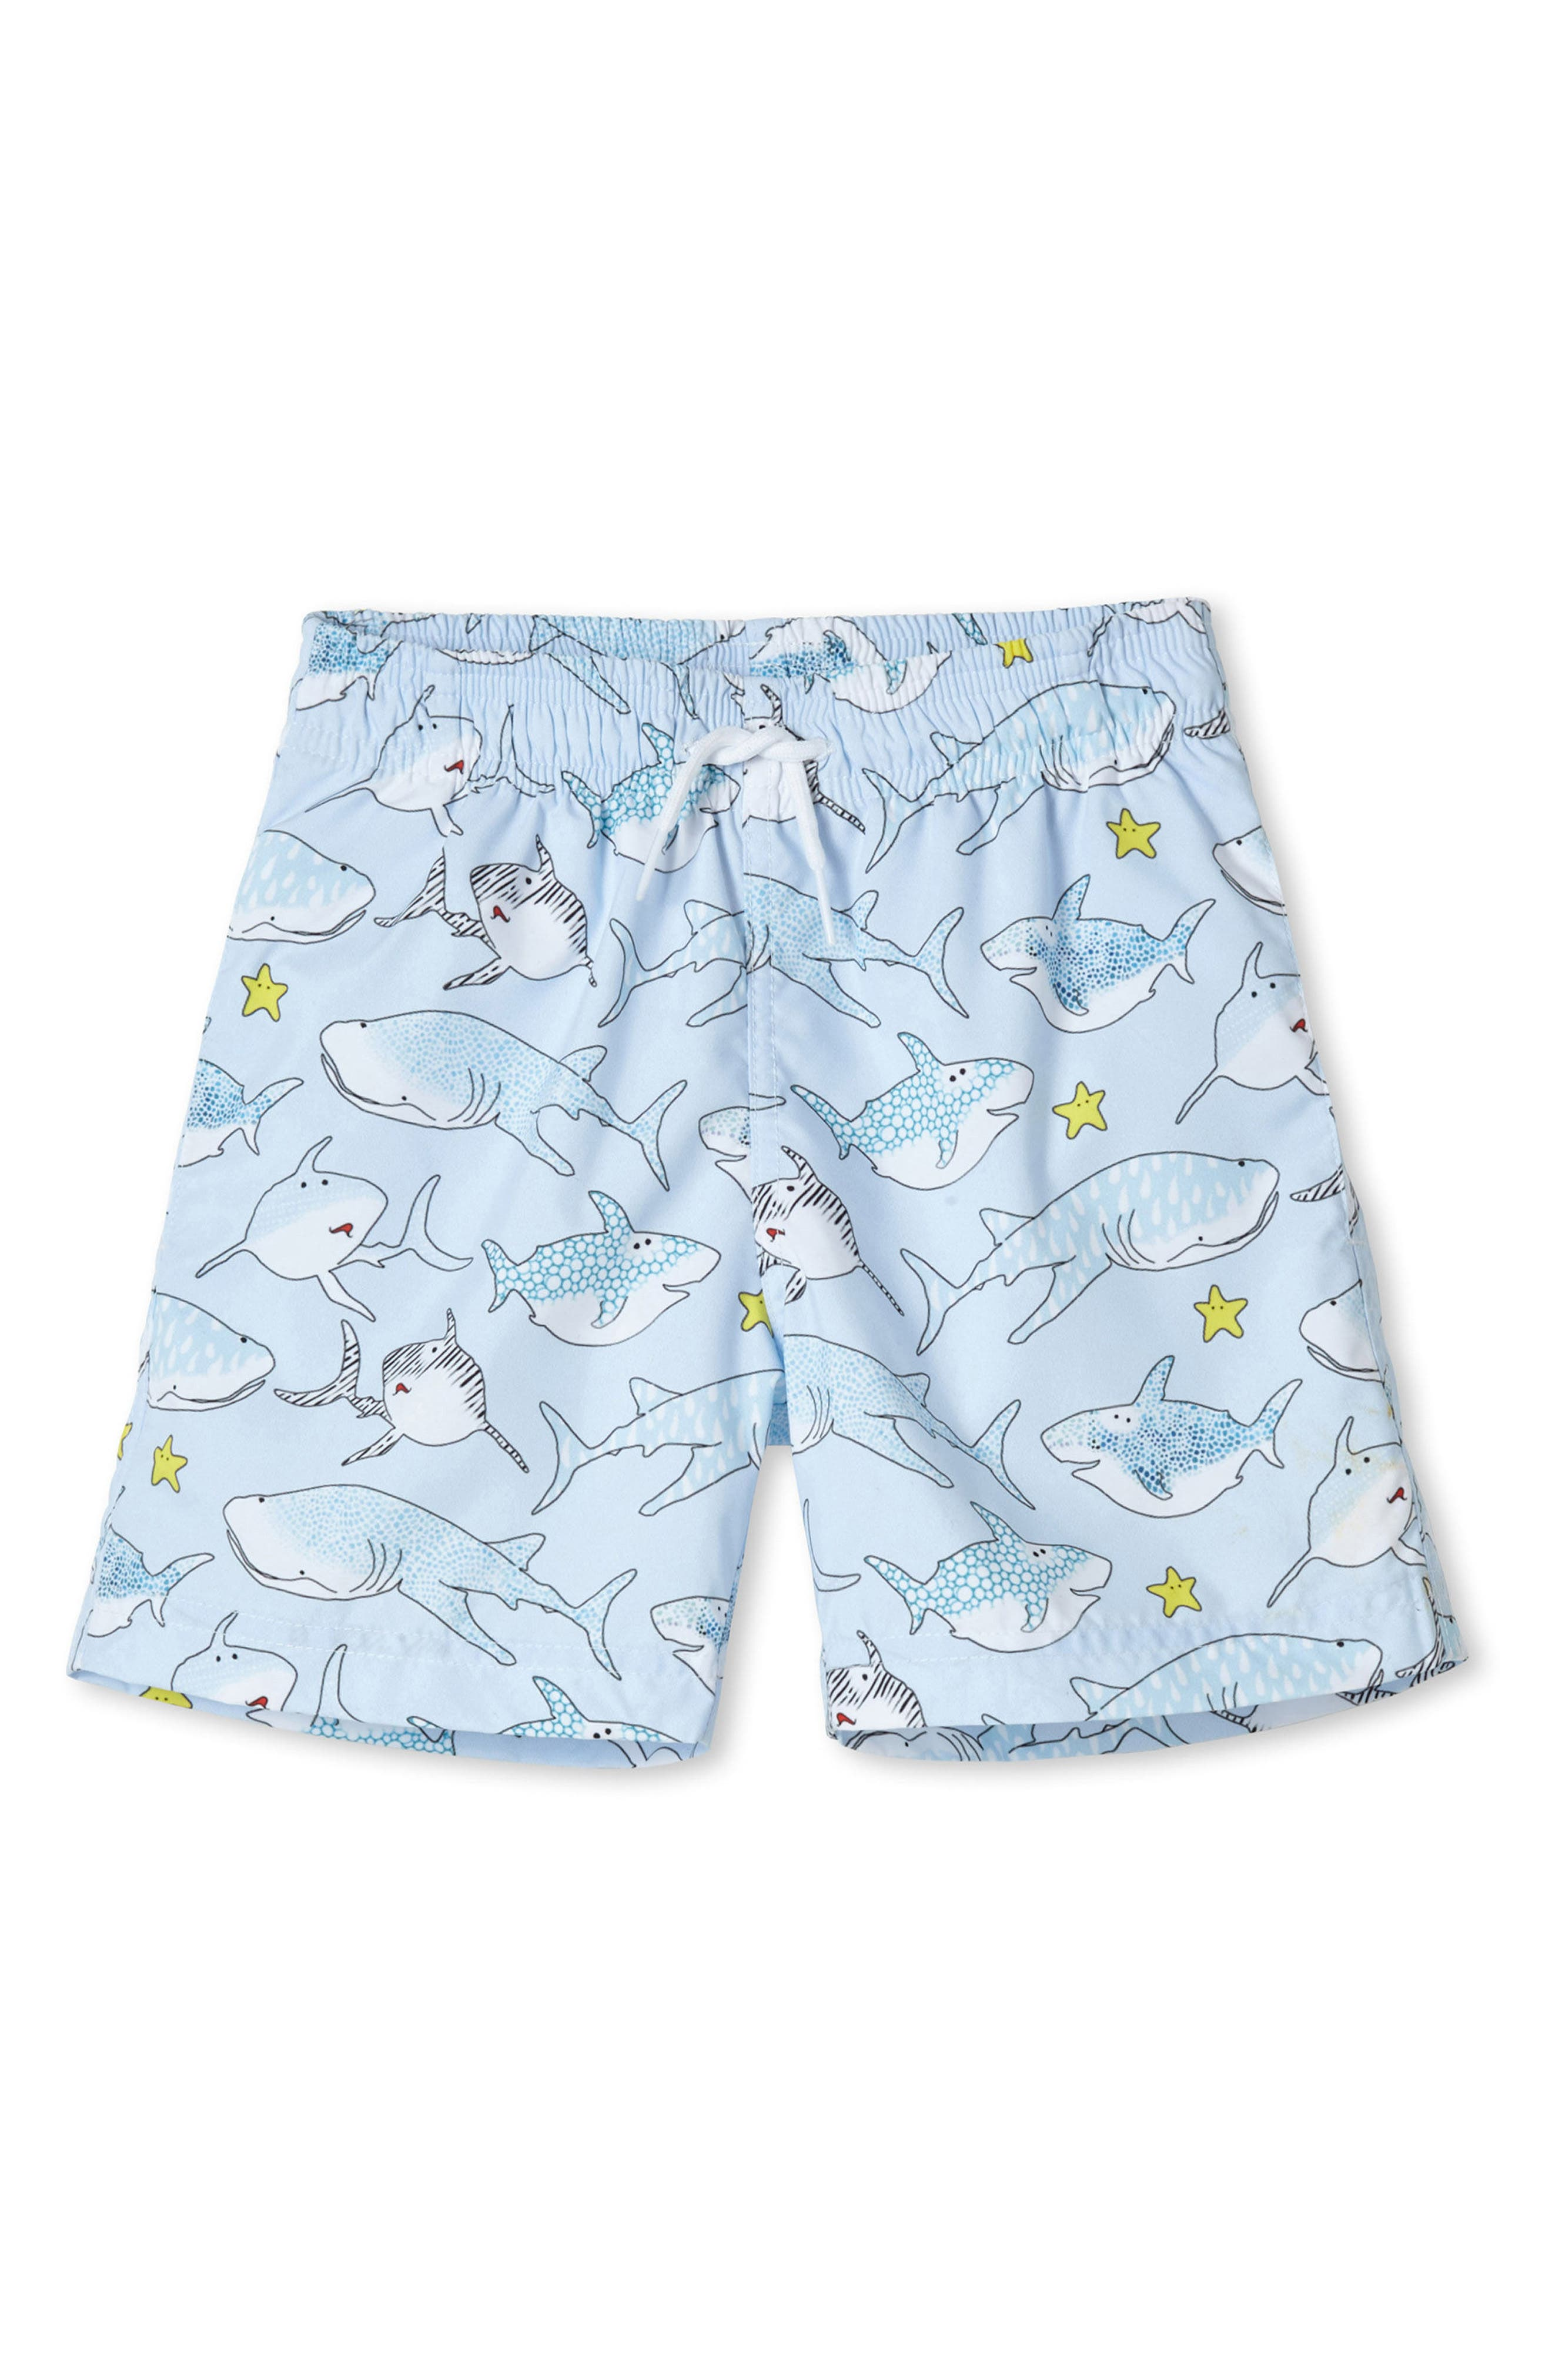 Alternate Image 1 Selected - Stella Cove Blue Shark Swim Trunks (Big Boys)